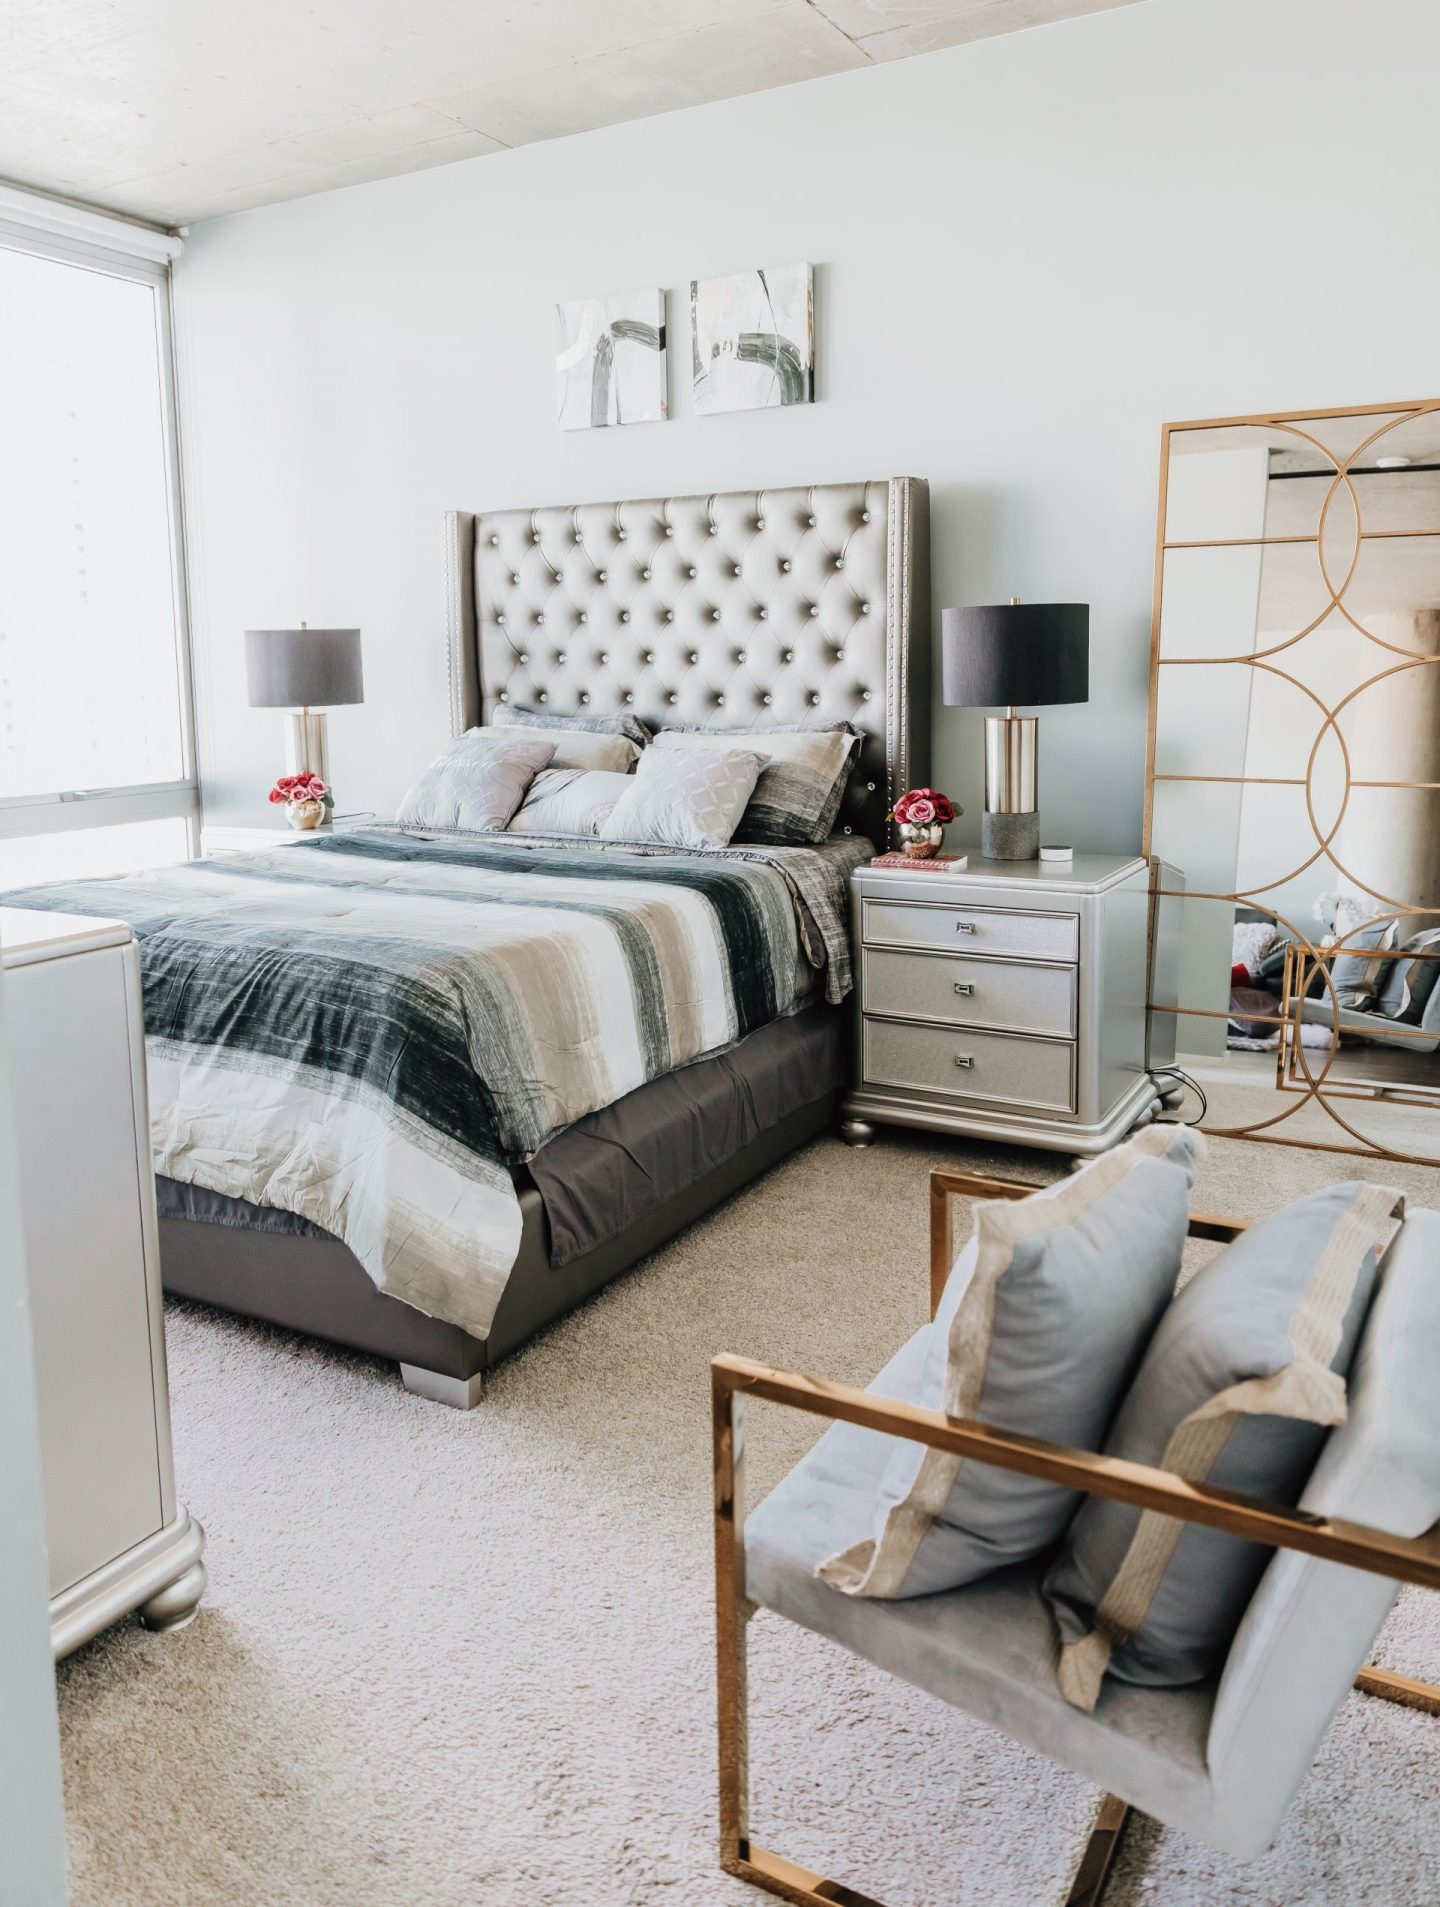 Tips for decorating your bedroom | Ashley Homestore